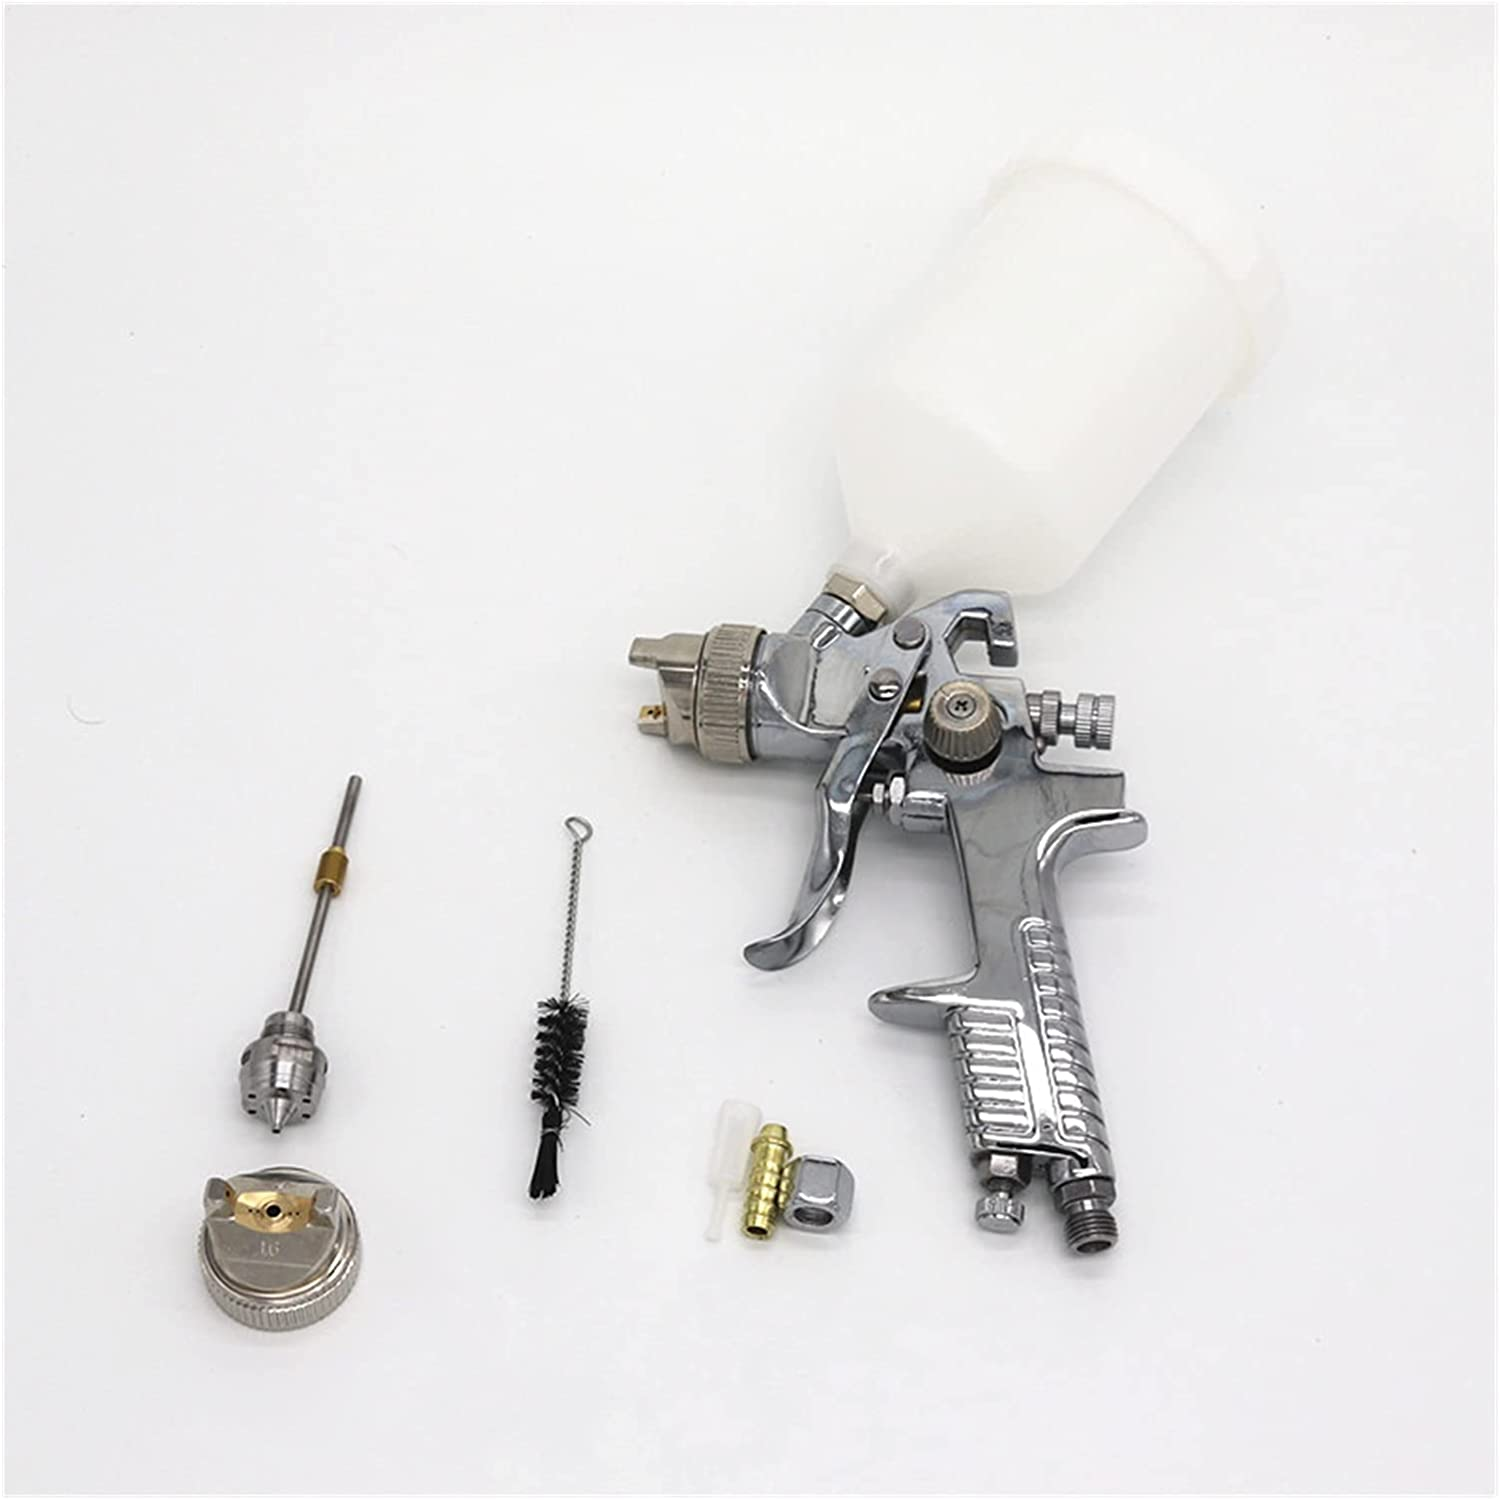 TIANYUAN Spray Manufacturer regenerated product Gun Car 1.3mm Paint Sp All items in the store 1.6mm Nozzle